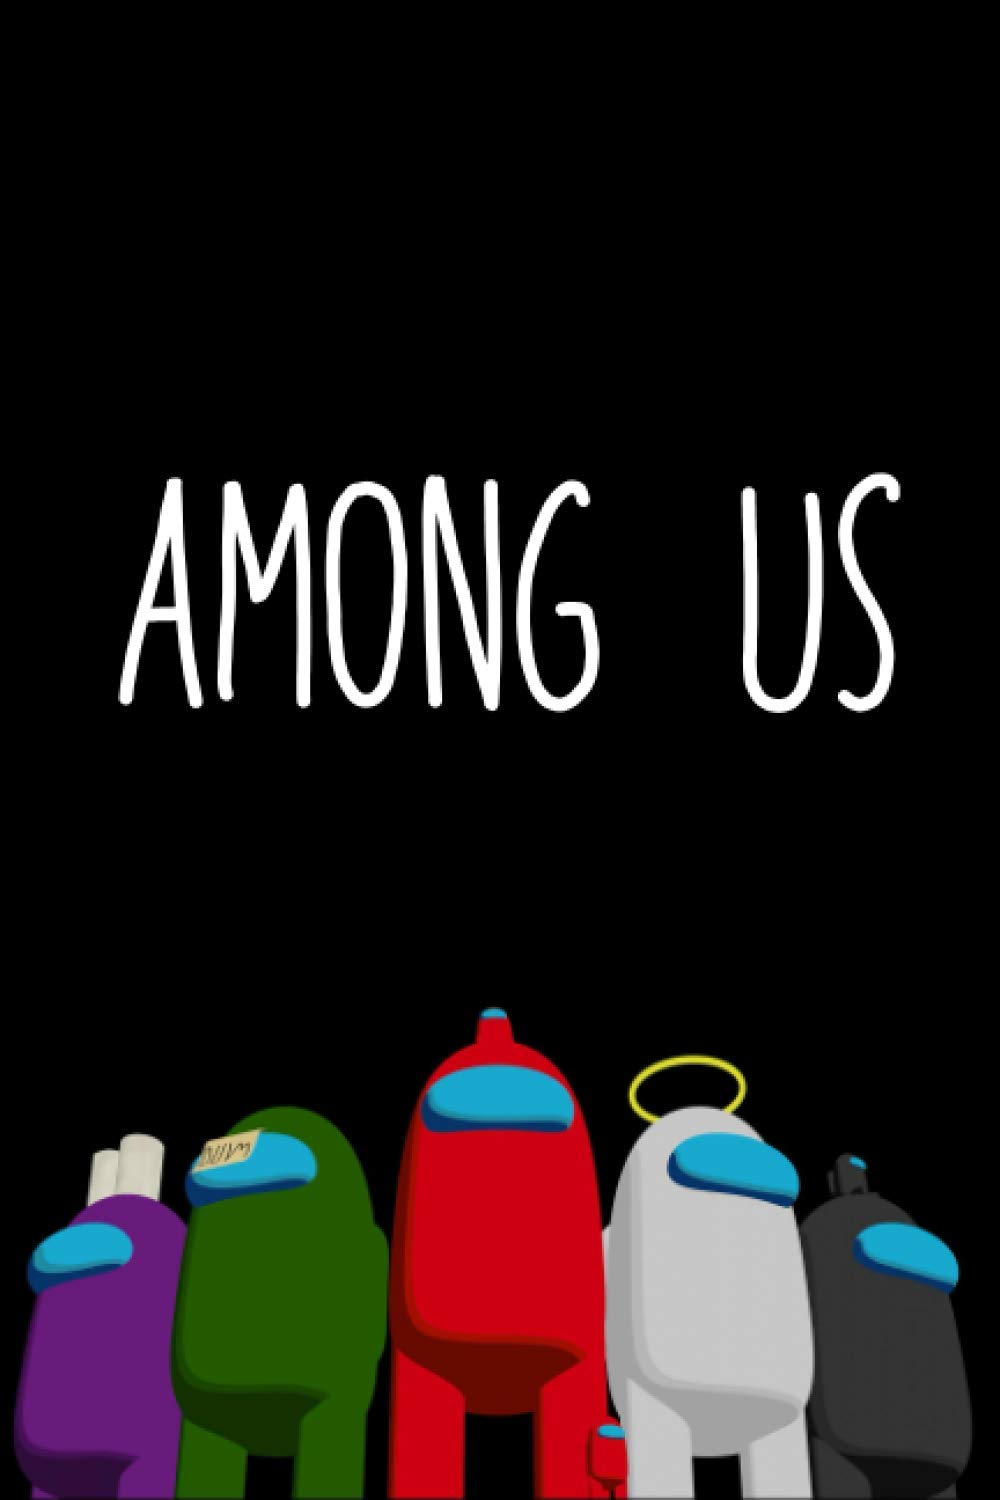 Among Us: Lined Notebook / Journal / Diary Gift, 120 Blank Pages, 6x9 Inches, Matte Finish Cover, Great Gift For All Gaming And Anime Fans For Kids And Adults